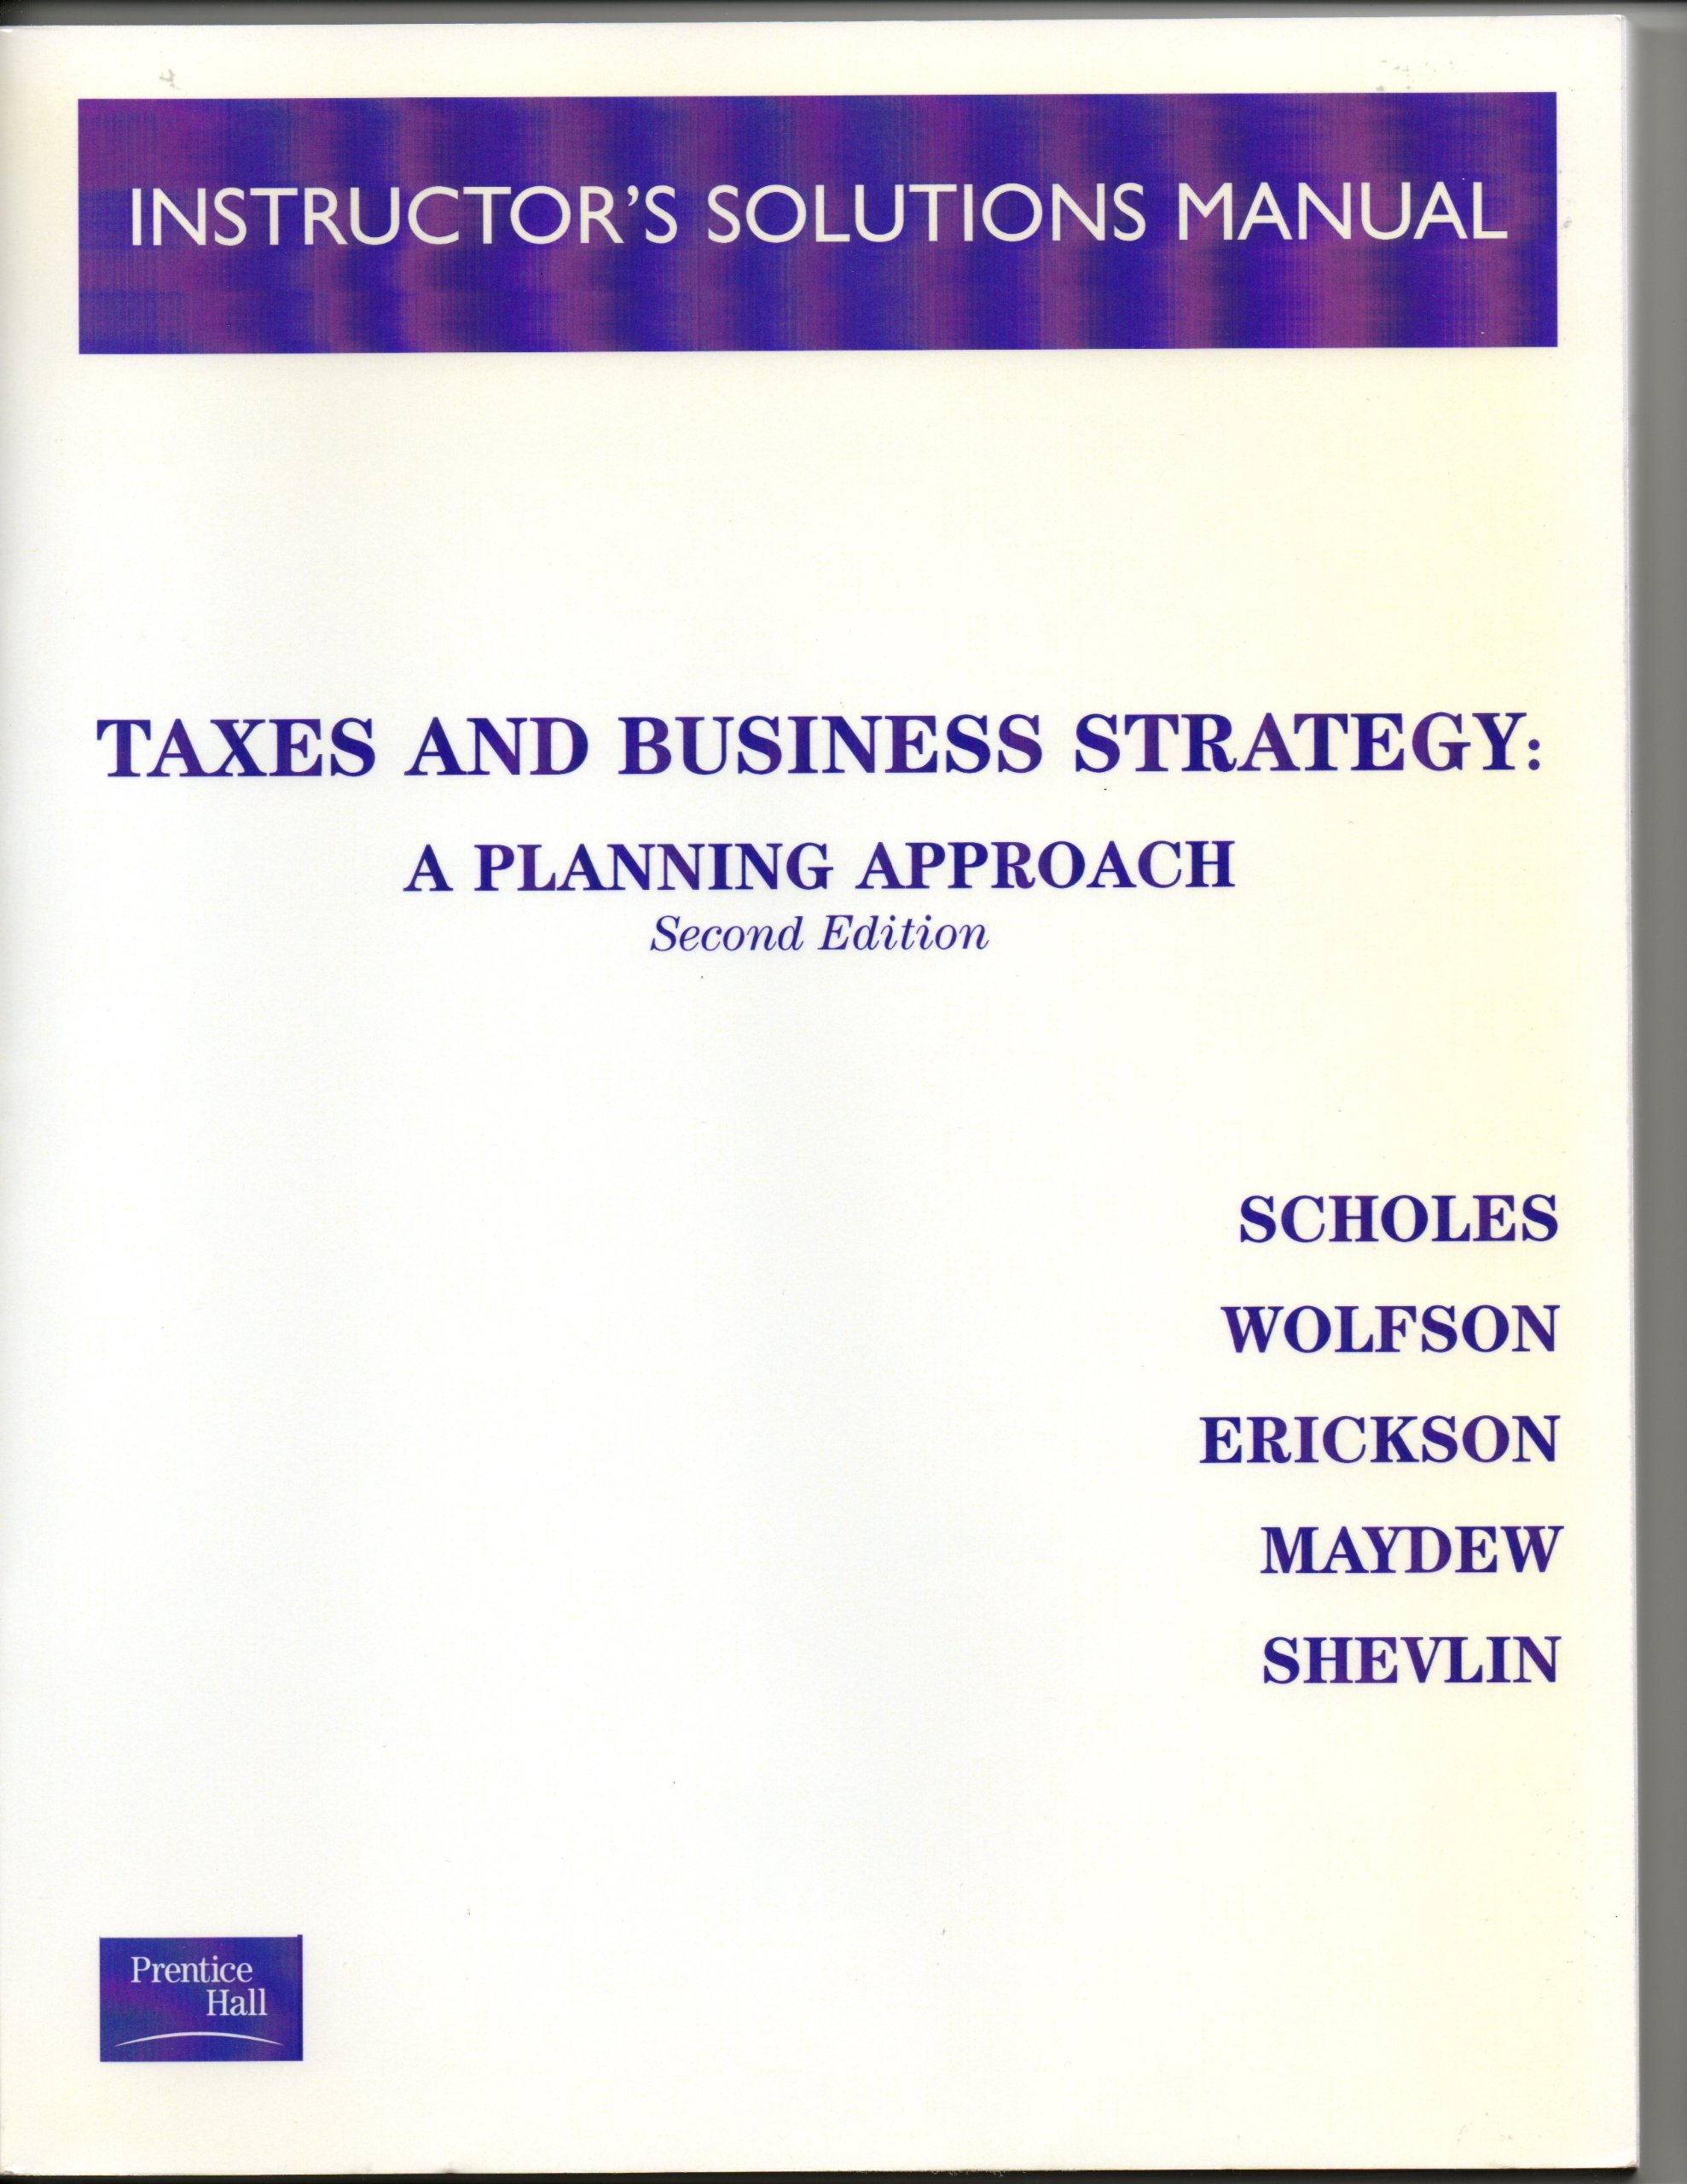 Instructor's Solutions Manual to Taxes and Business Strategy: A Planning  Approach: Wolfson, Erickson, Maydew, and Shevlin Scholes: Amazon.com: Books